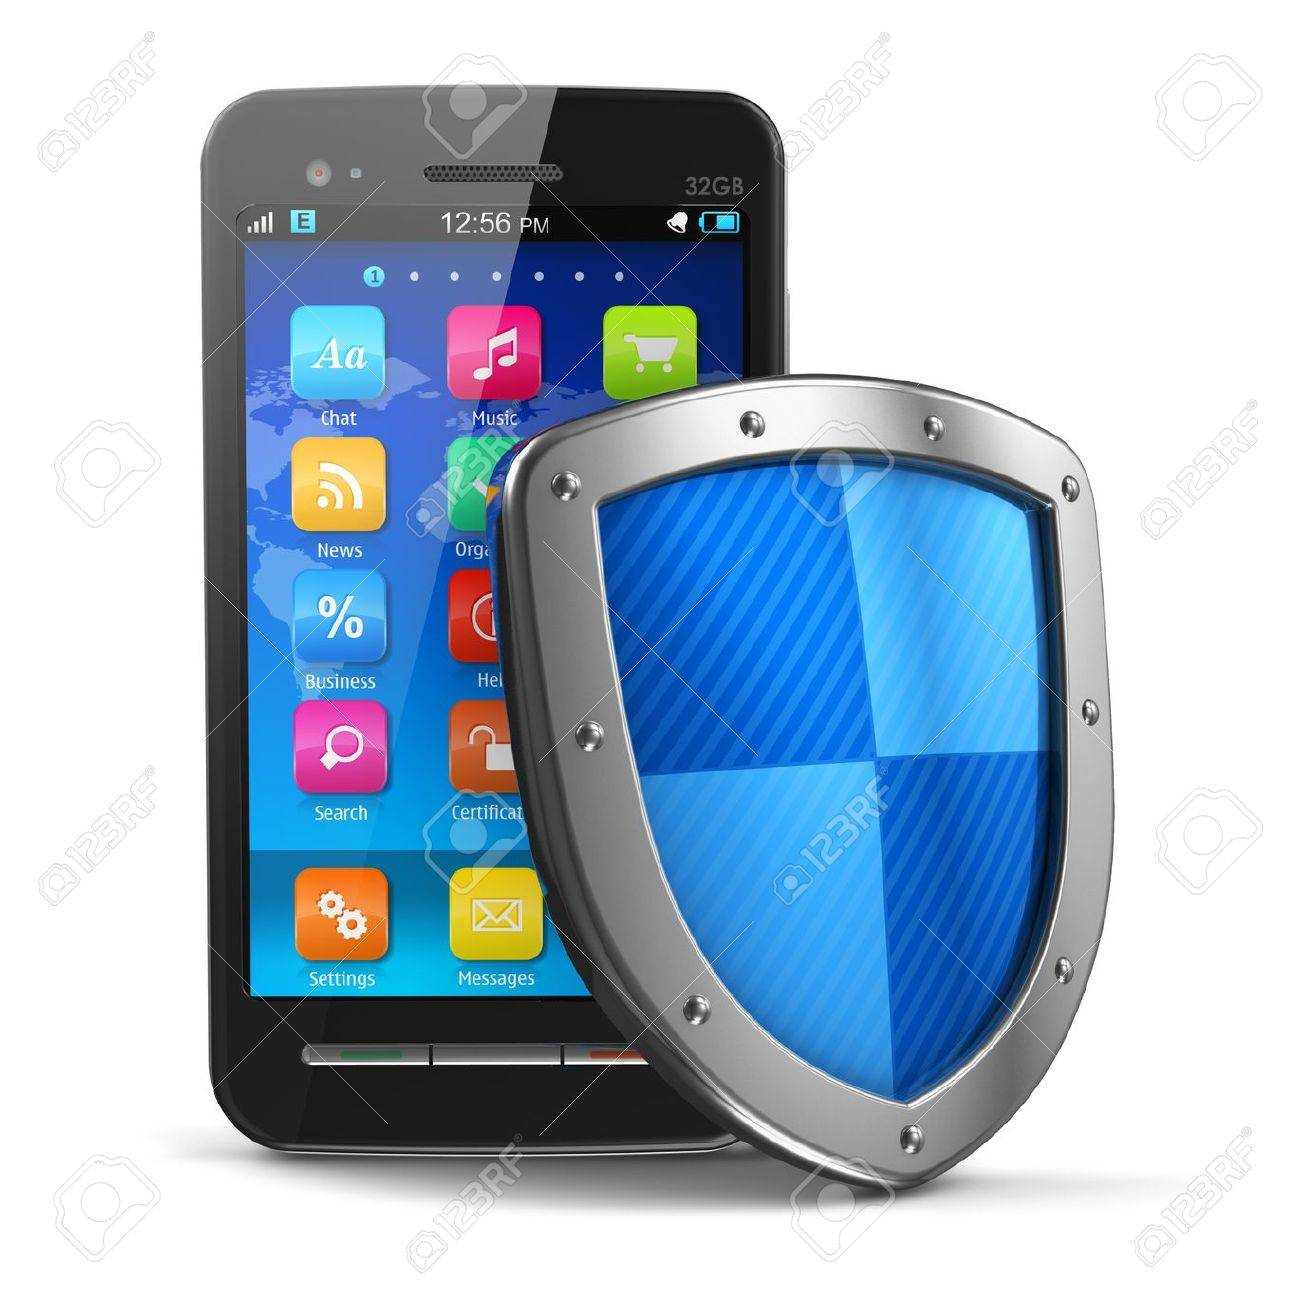 Mobile security and antivirus protection concept  black glossy touchscreen smartphone covered by metal protection shield isolated on white background     Design of smartphone is my own and all text labels are fully abstract Stock Photo - 13537057